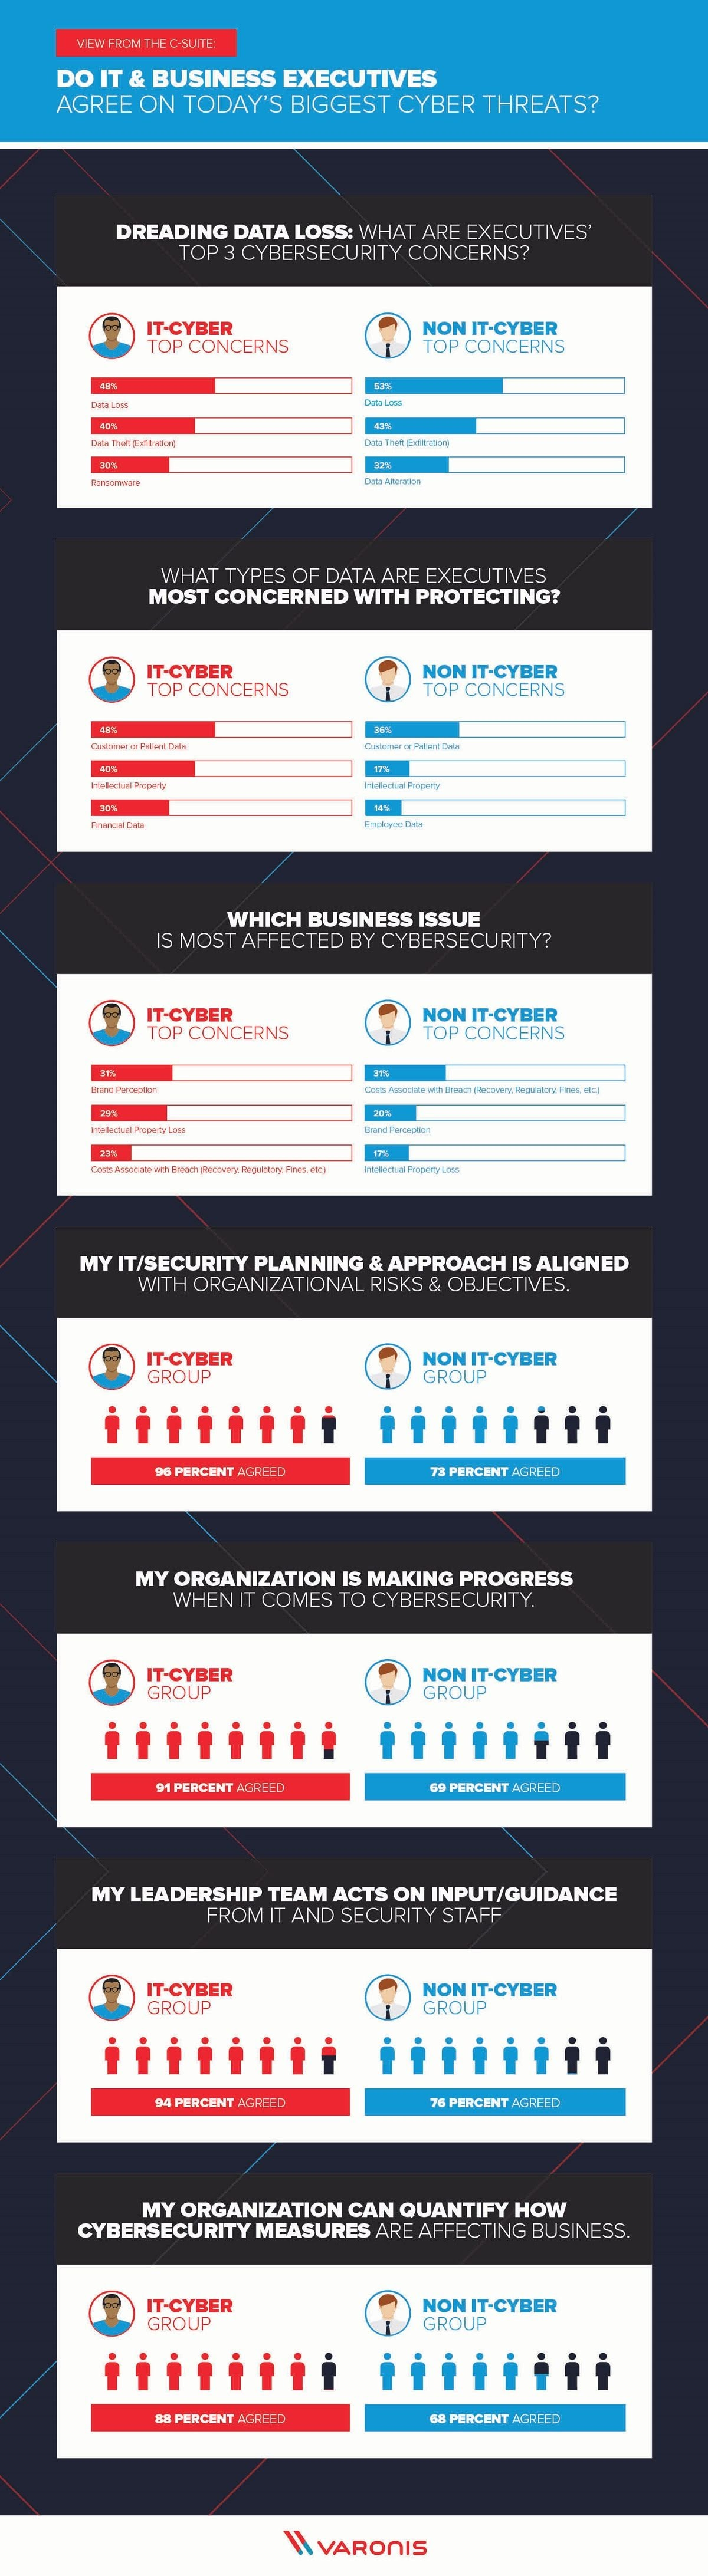 Do Executives and Cybersecurity Pros Agree on Today's Biggest Cyber Threats? #infographics